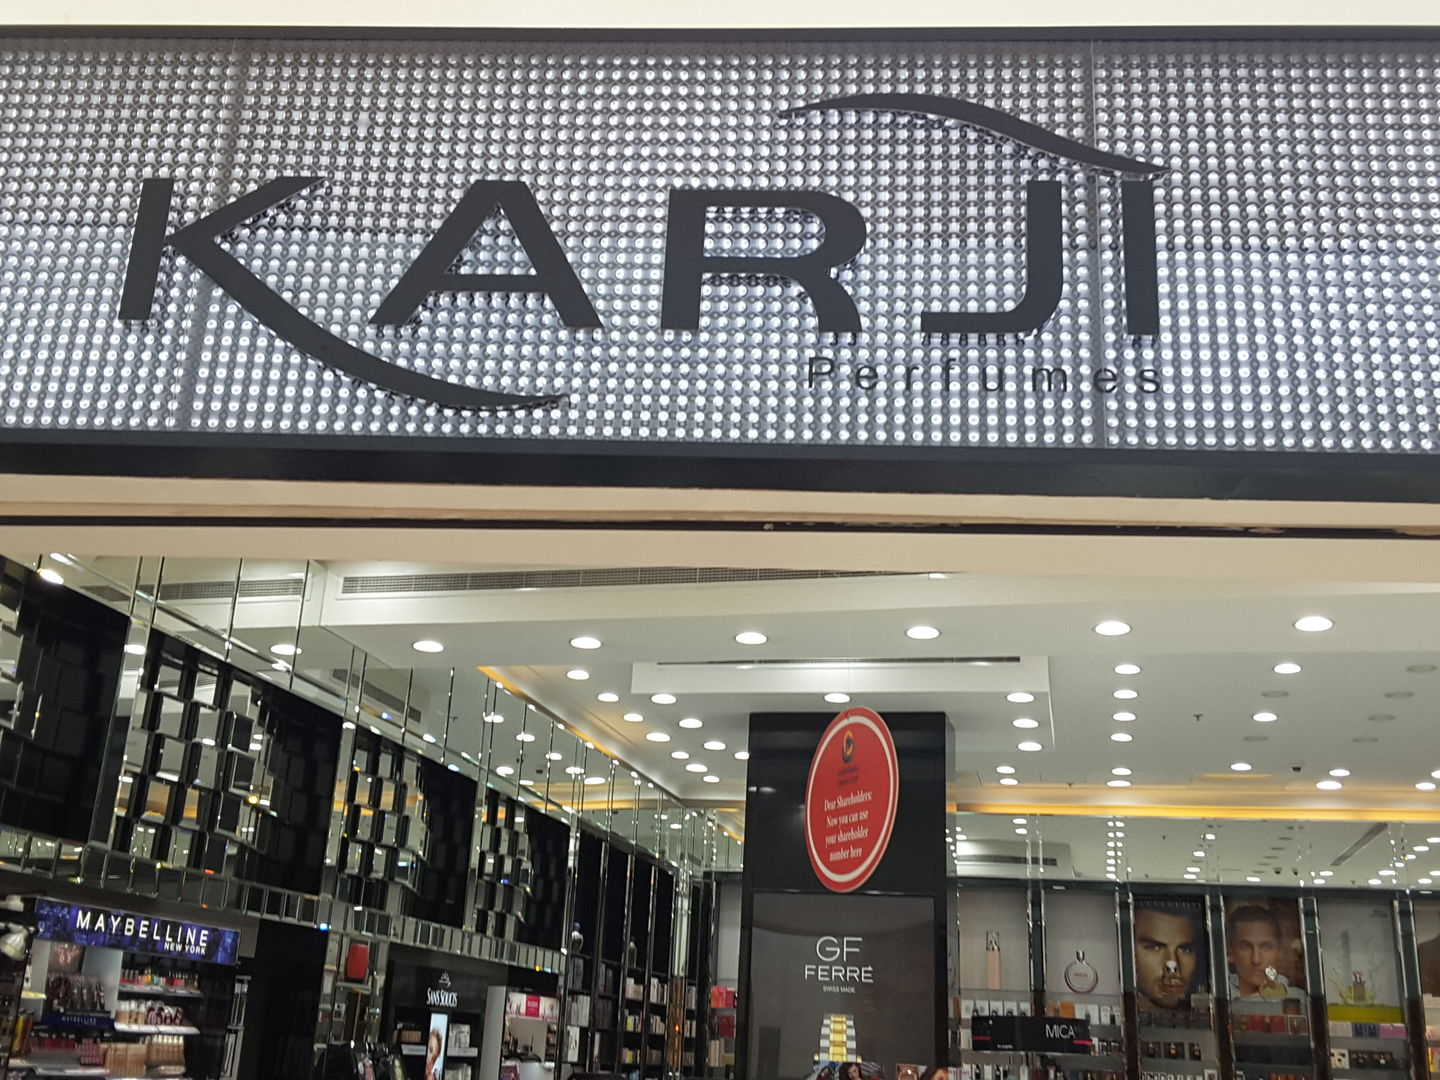 HiDubai-business-karji-perfumes-beauty-wellness-health-beauty-cosmetics-stores-al-barsha-2-dubai-2